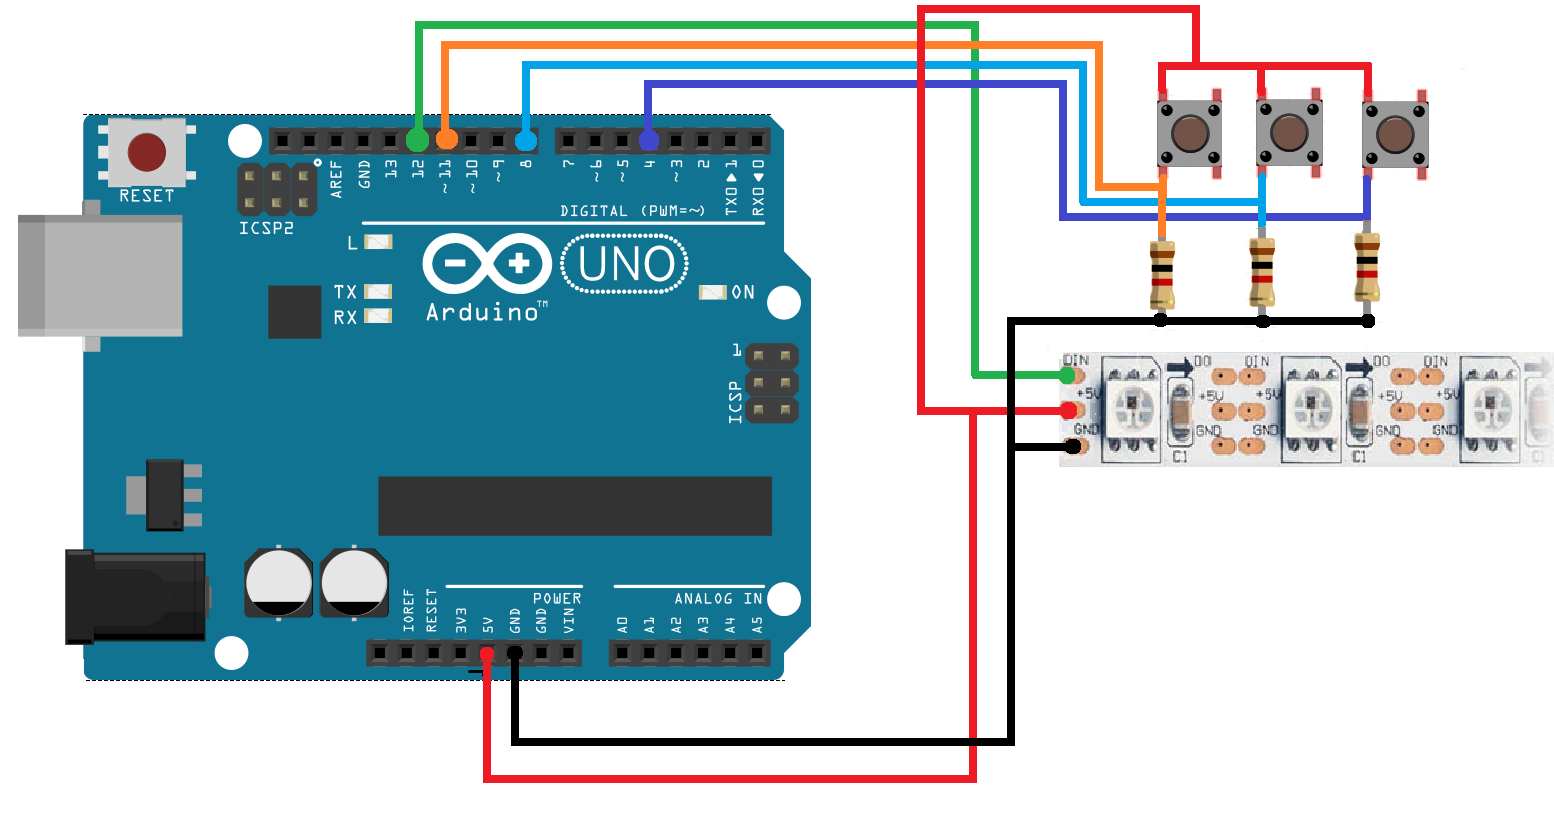 wiring diagram power switch with light with Arduino Ambilight on Arduino Ambilight additionally View All further Led Wiring Diagram Arduino together with Airtecnics Presents Clever An Advanced Intelligent System For Air Curtains Management together with Sale 7536328 1 10v Photocell Motion Occupancy Sensors For Lighting Controlling.